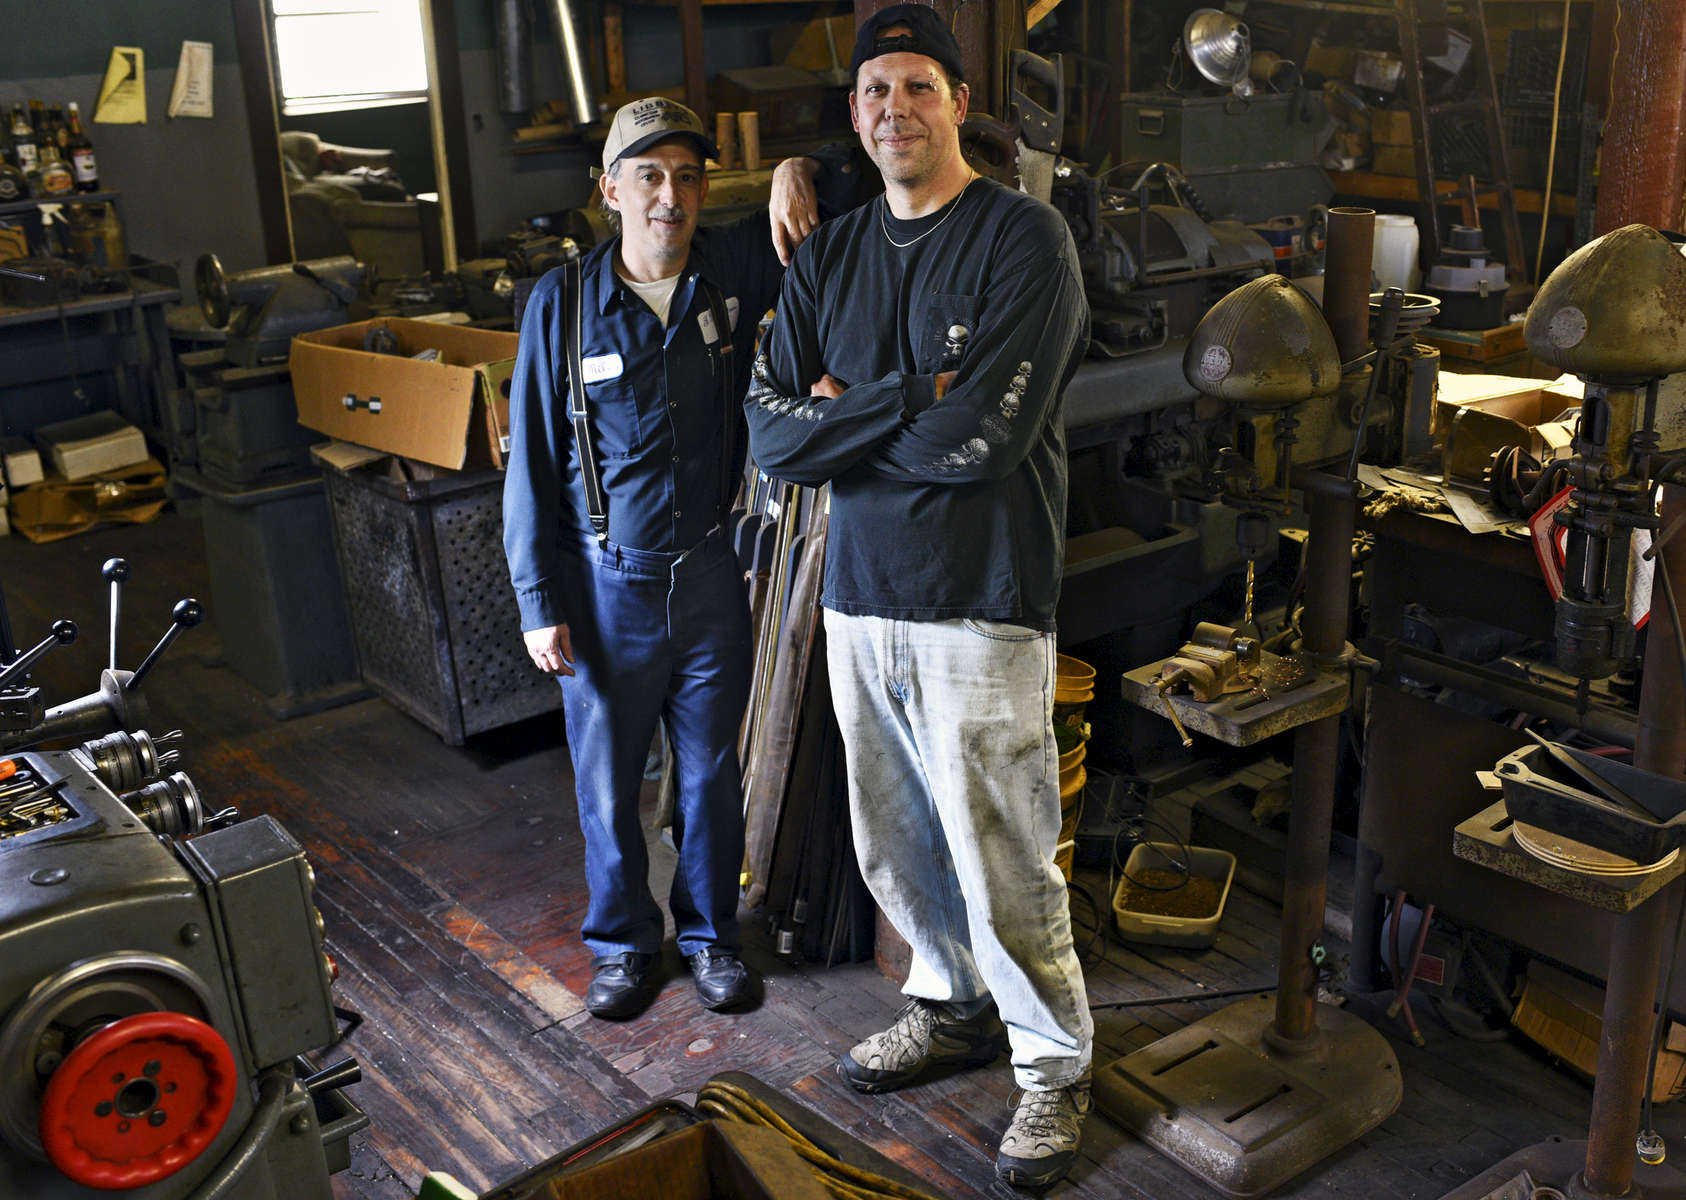 Michael Leveille, left, and Kevin Marcinkus of KM Lifestyle Manufacturing design and handcraft electrical and mechanical components for antique auto and radio collection. © Christine HochkeppelT&G Staff/Christine Hochkeppel